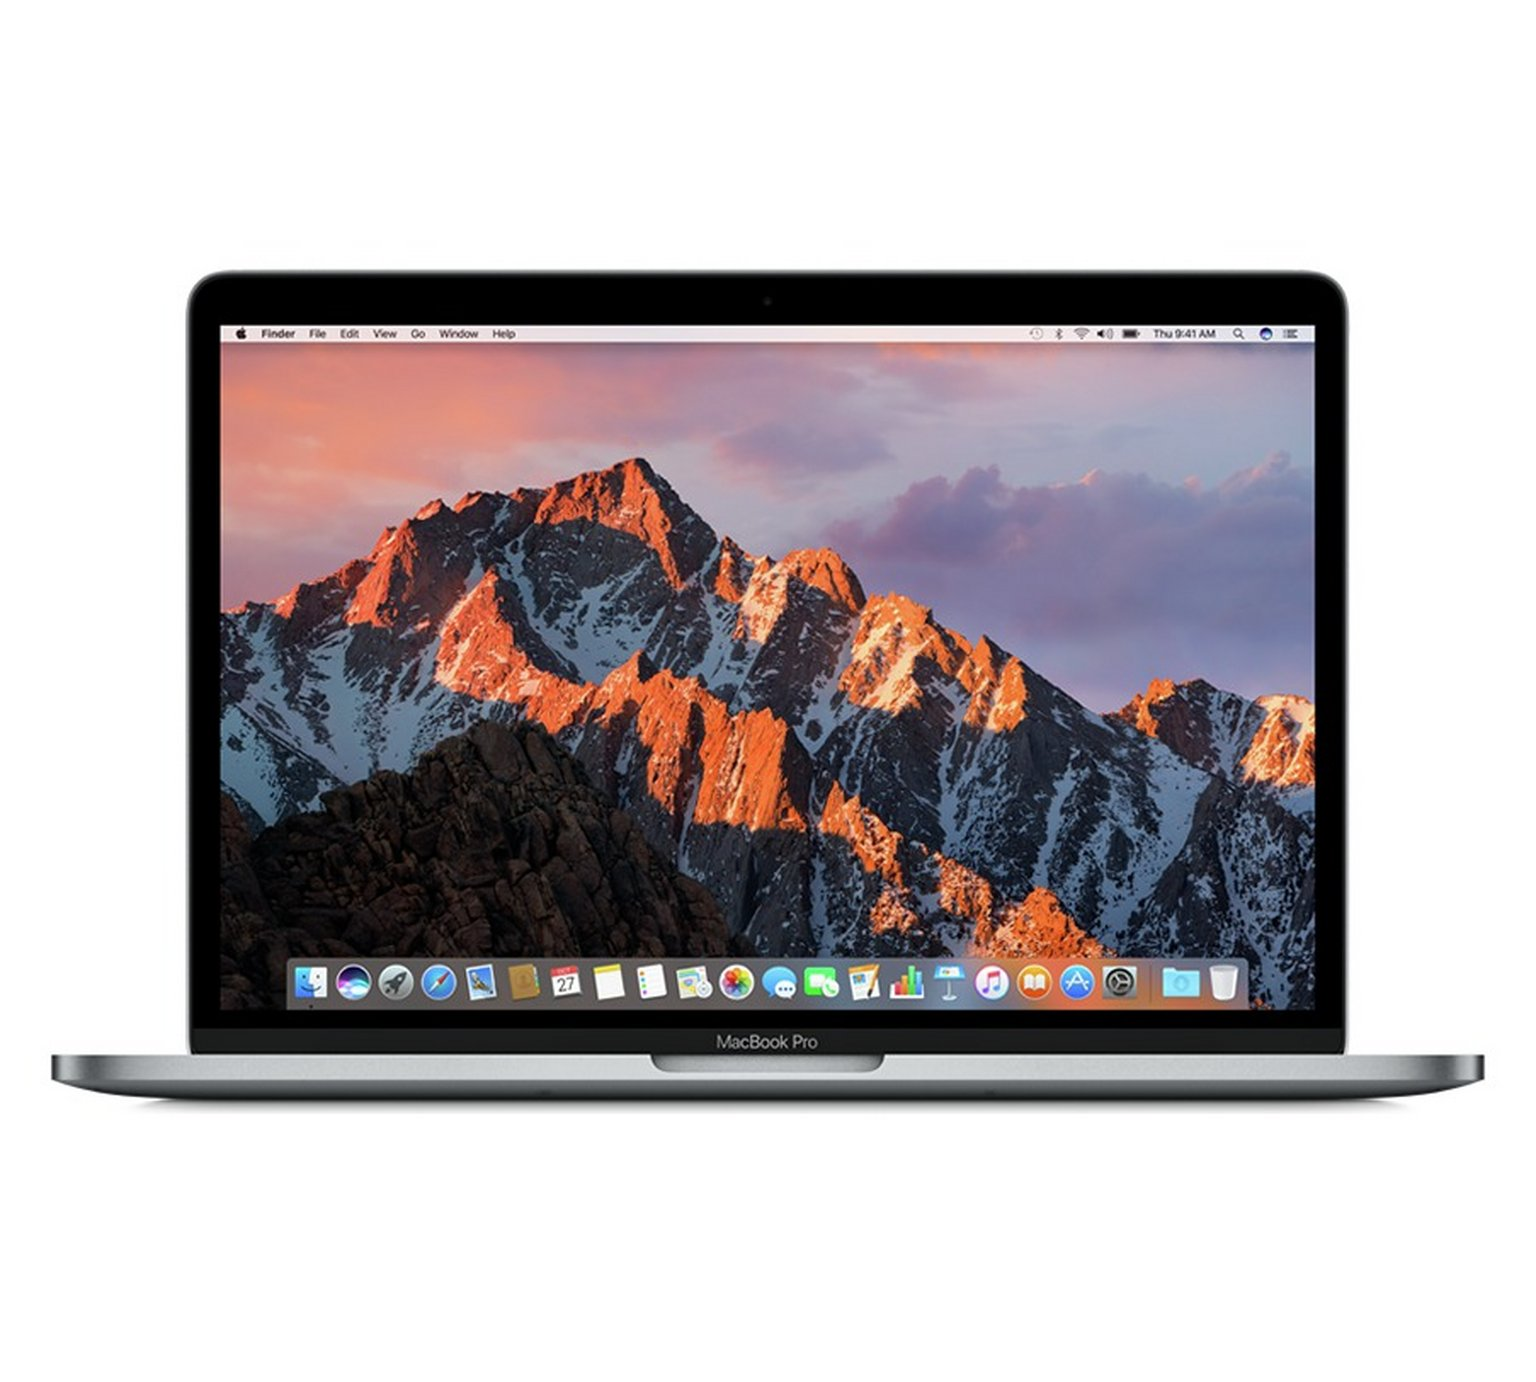 Apple MacBook Pro 2017 13 Inch i5 8GB 128GB Space Grey by Apple 698/2067